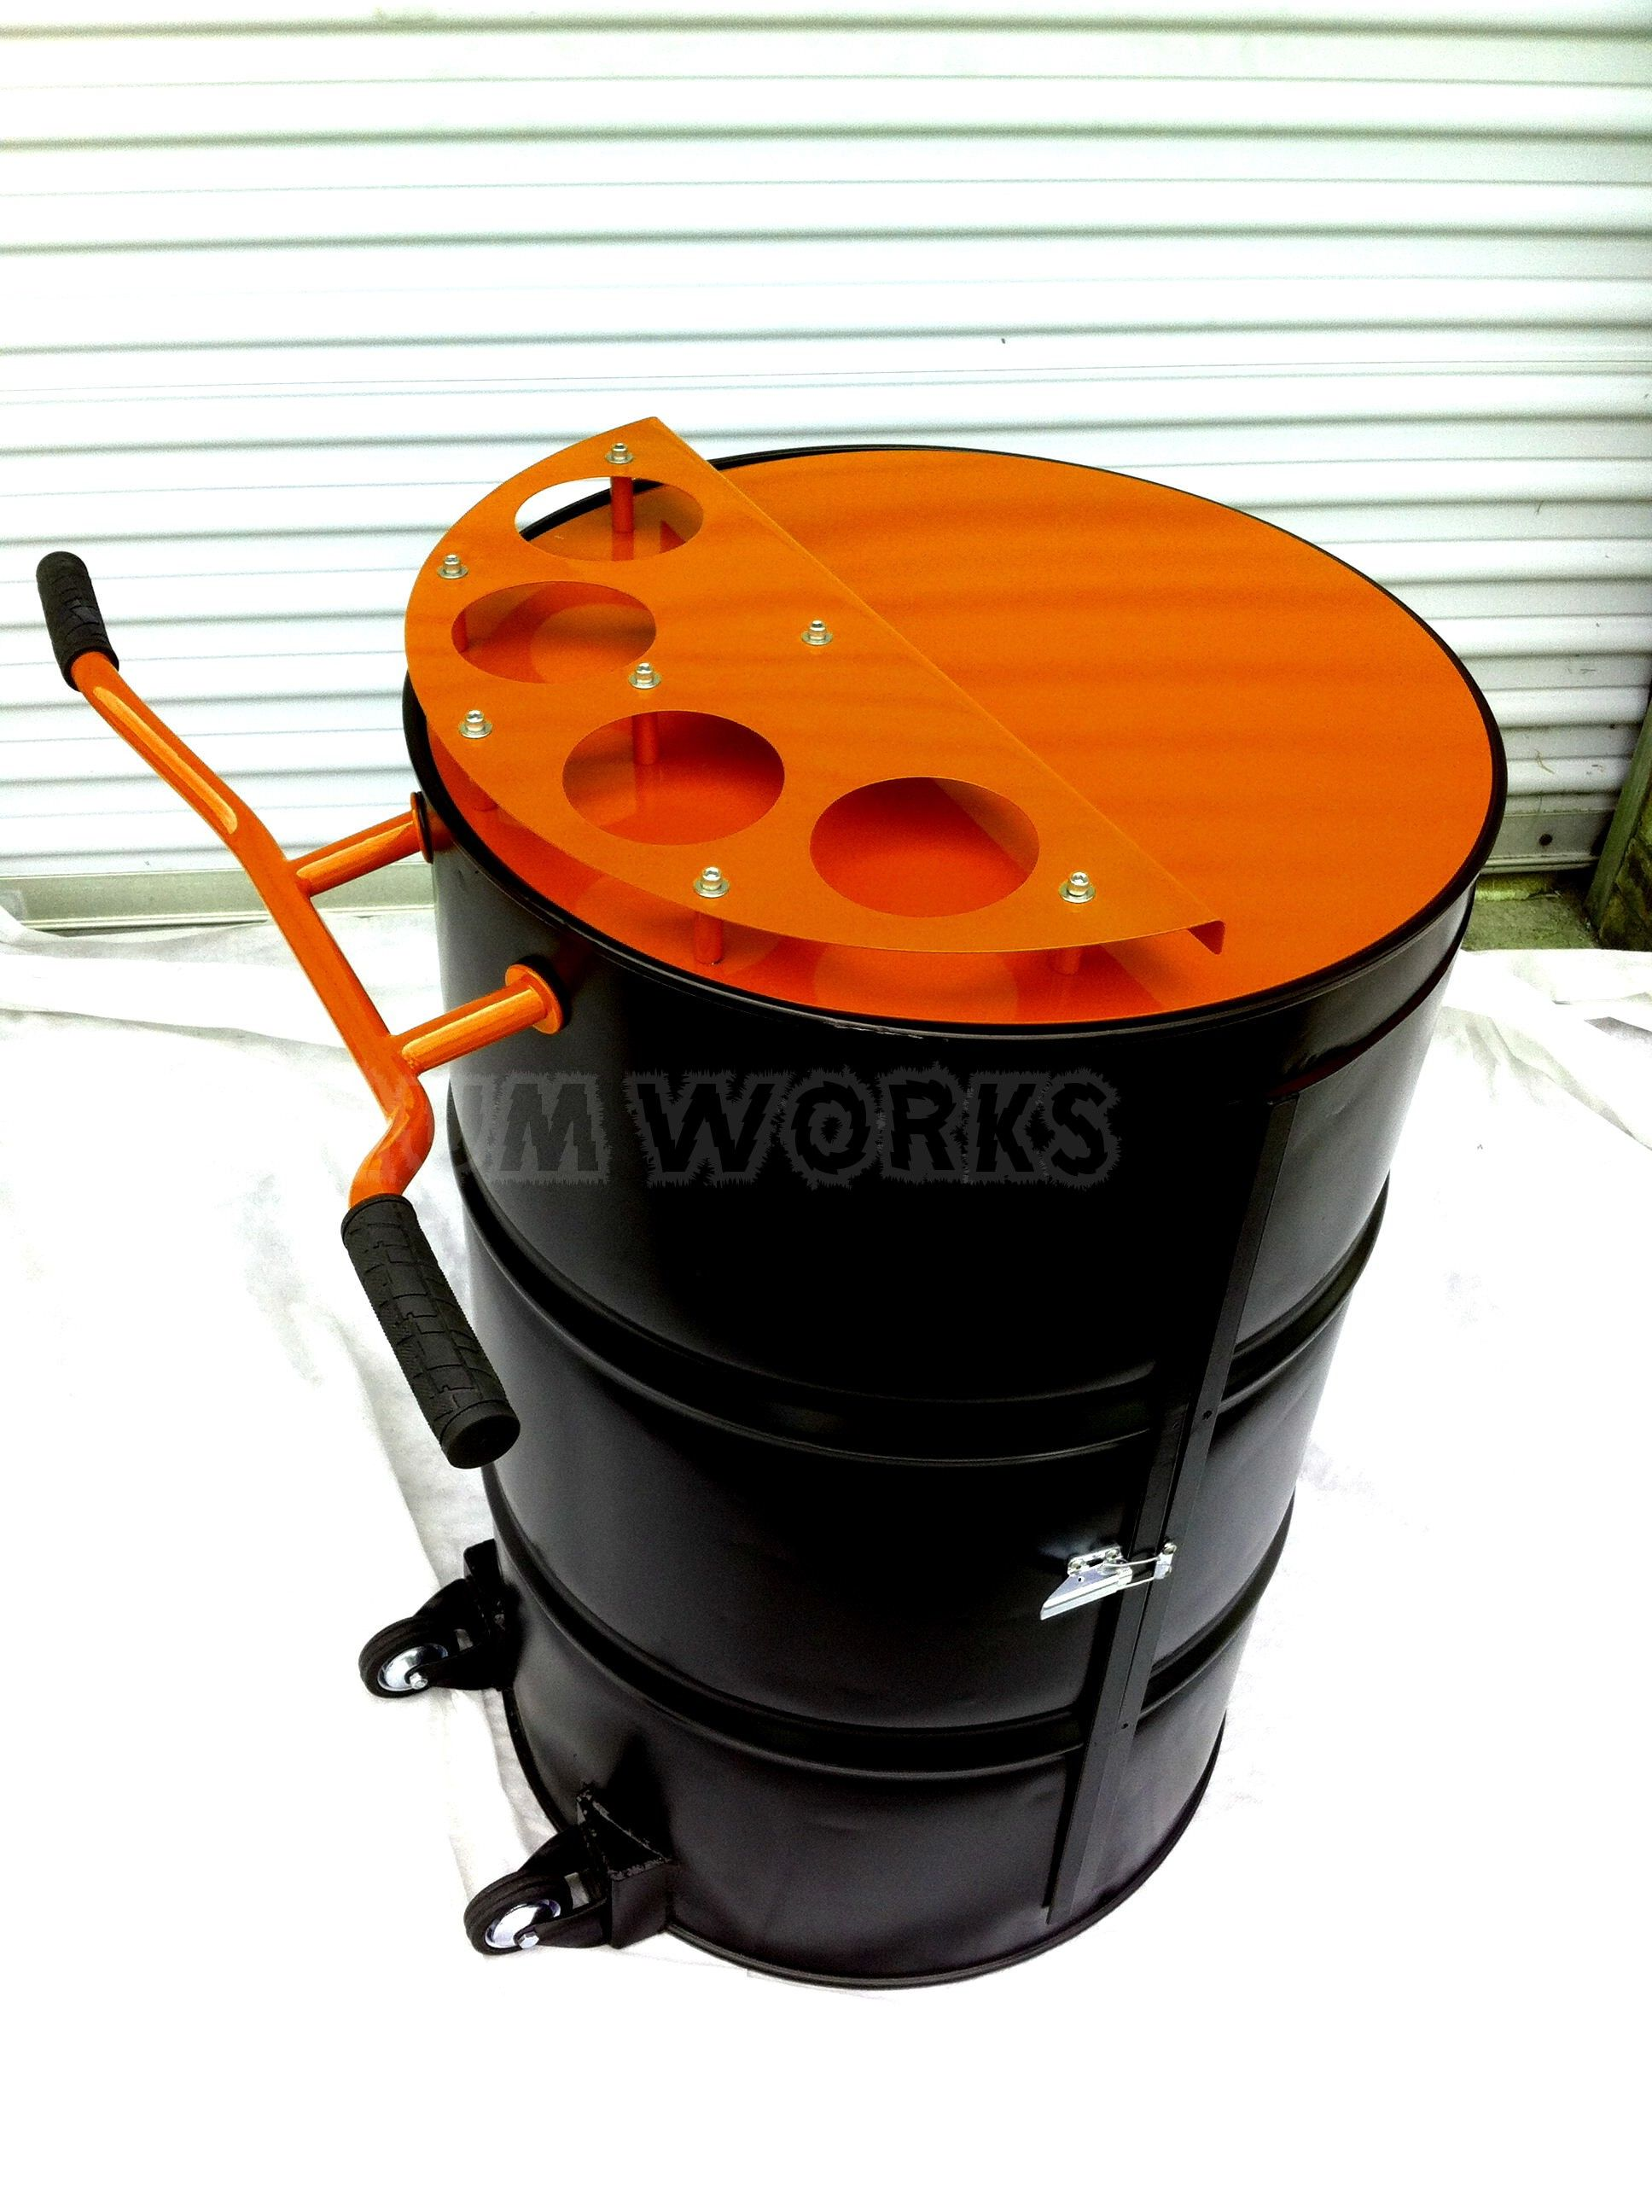 Recycled 55 gallon steel drum made into portable bar Powder coated